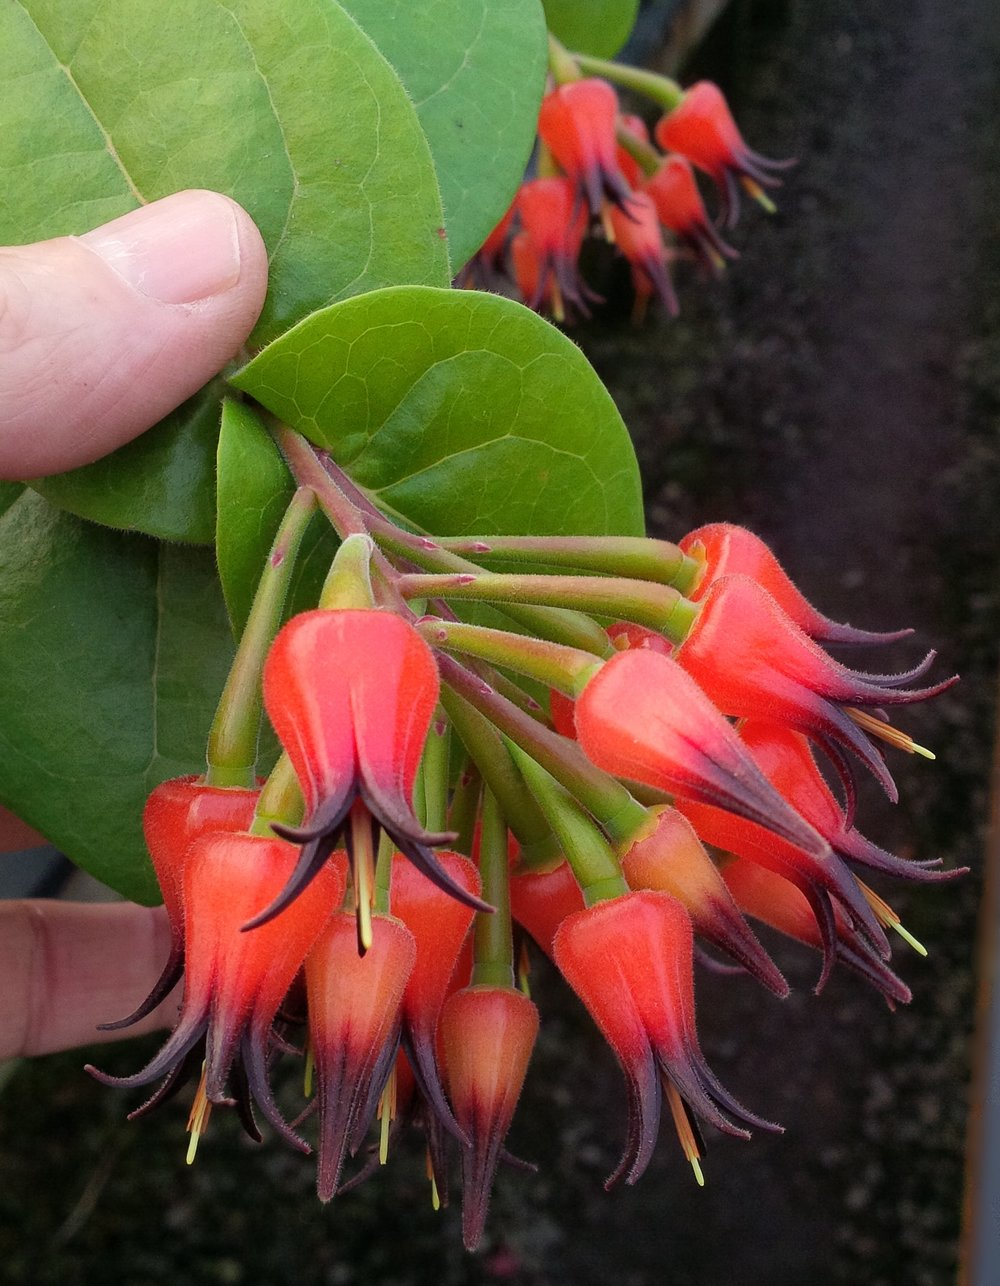 Flower detail,  Ceratostema amplexicaule , California greenhouse. This species can be trained as an upright shrub and flowers almost year-round when mature. Both flowers and fruit are edible in this species.